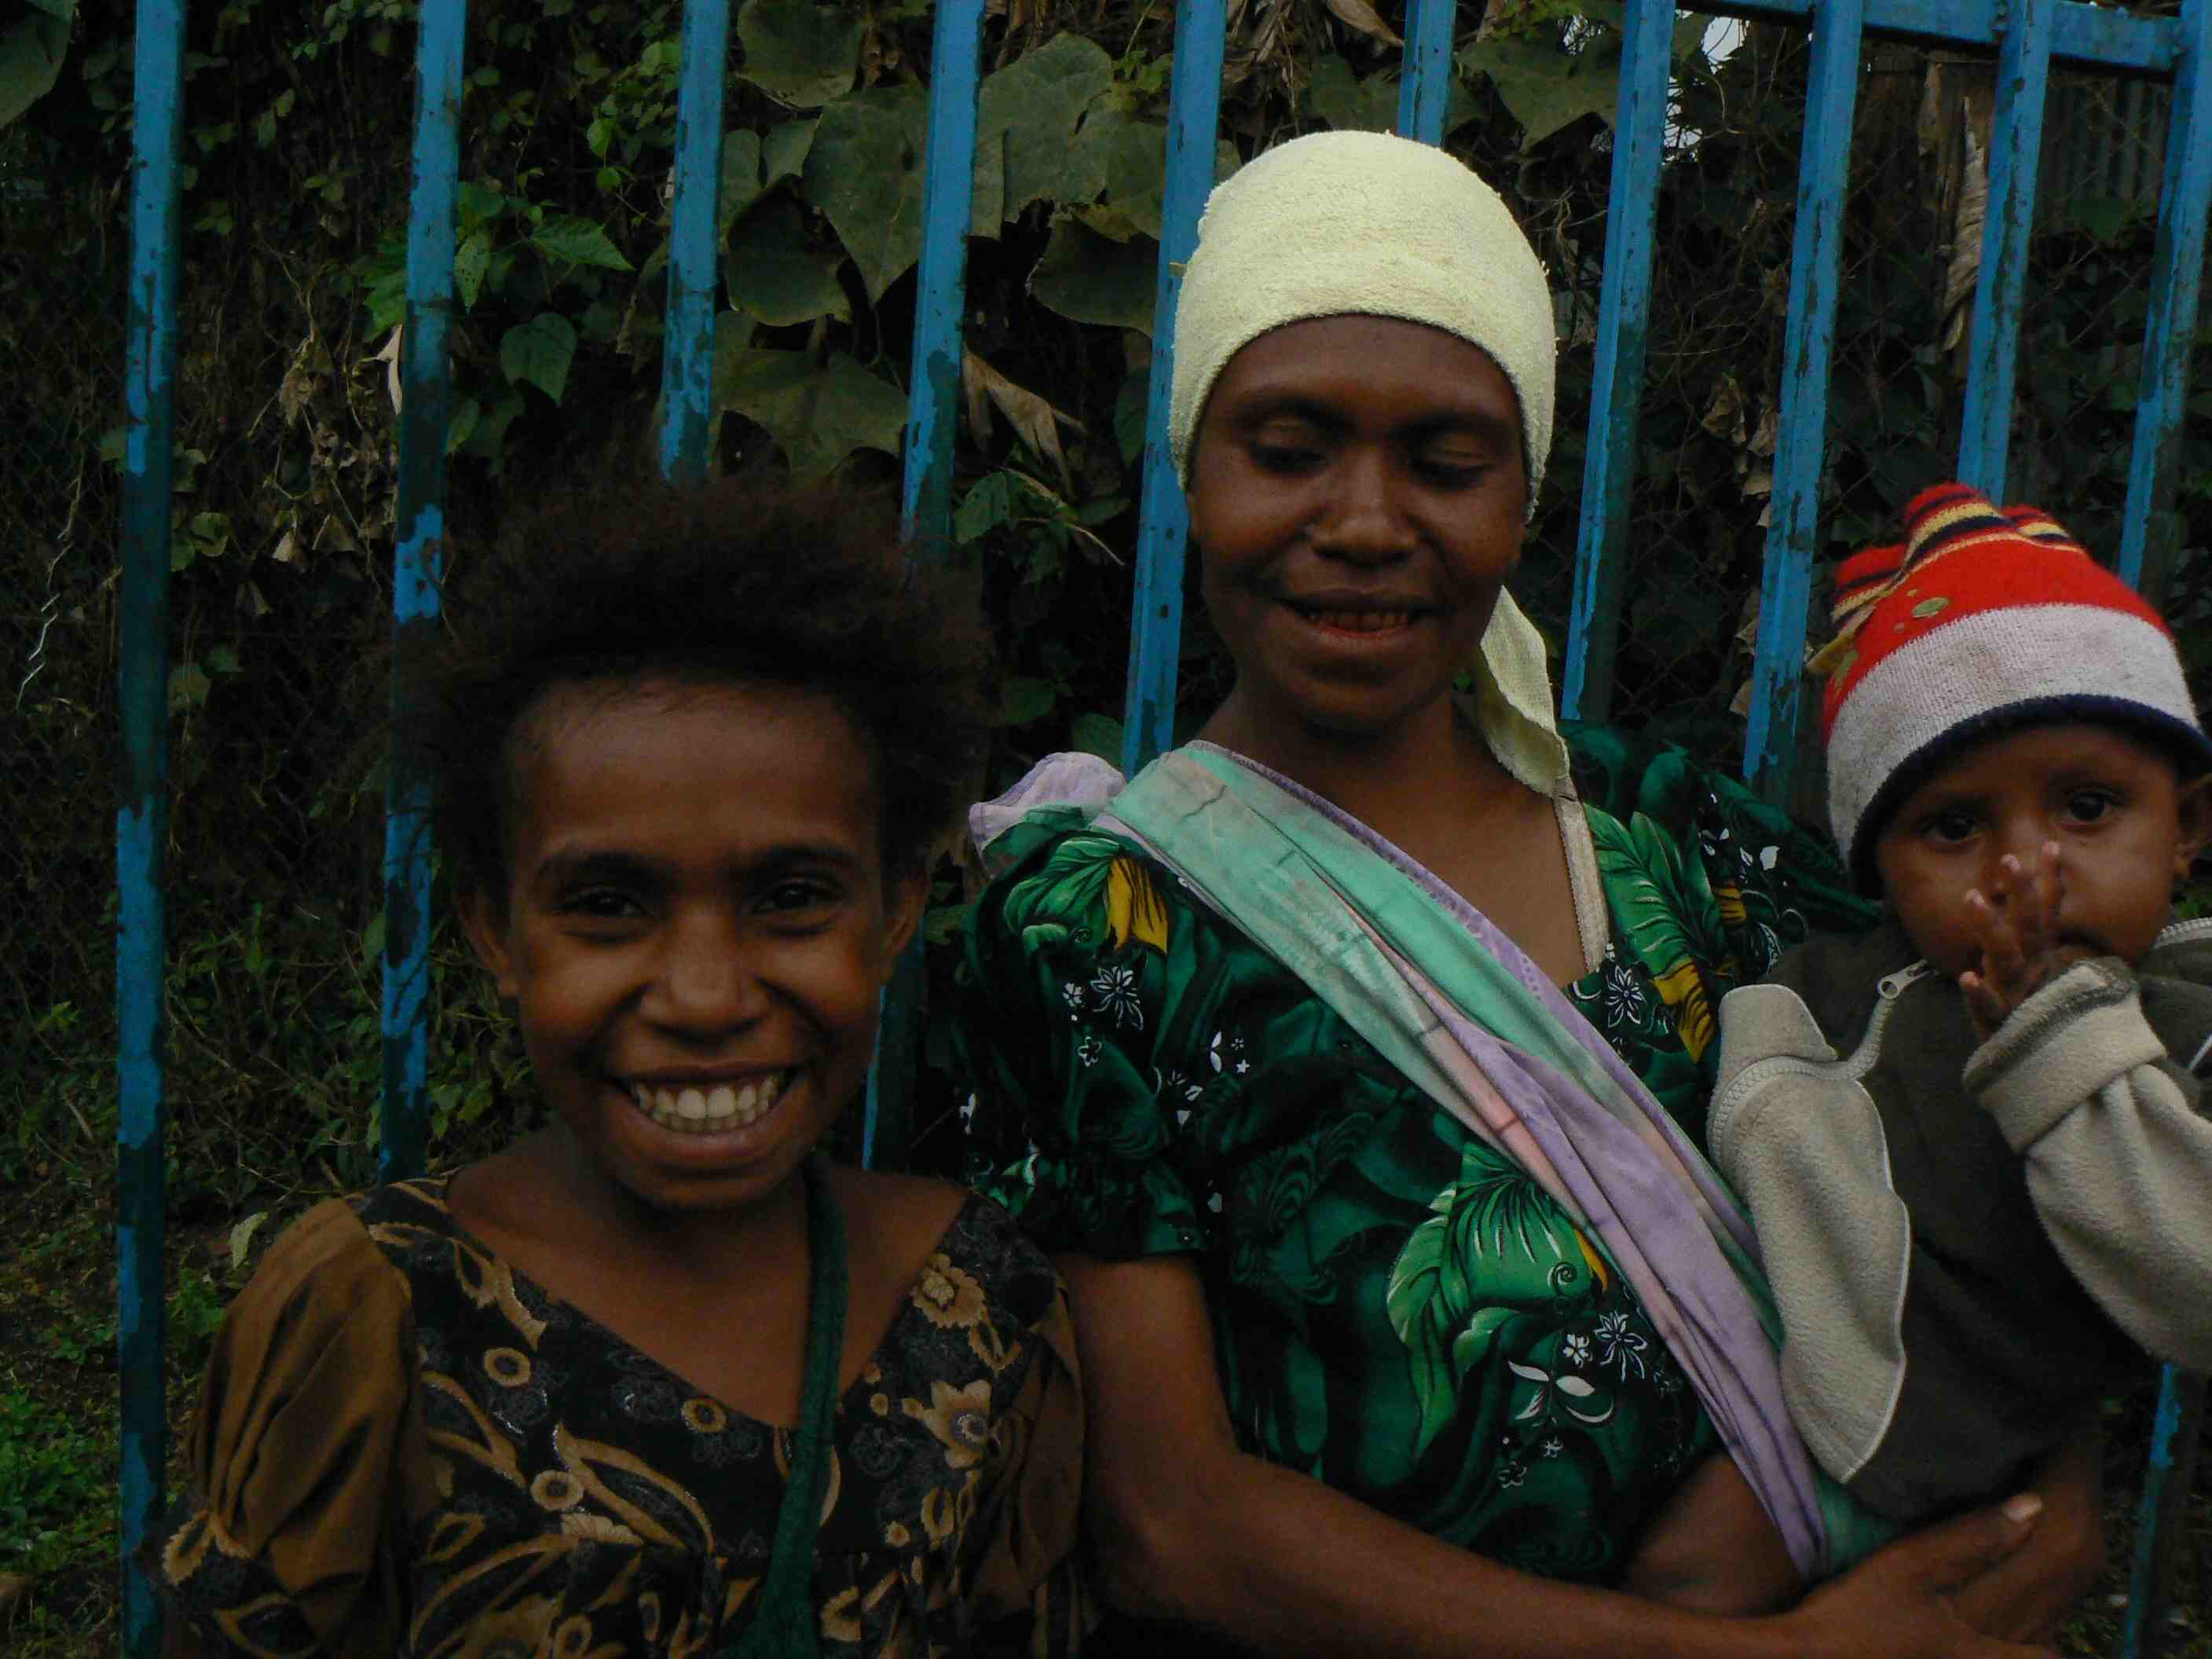 PNG's maternal mortality rate has stayed persistently high in part due to early pregnancies. Lisa Micheals, 27, is pictured with two of her five children she started having at age 16. She decided to have a tubal ligation after her most recent one after wa